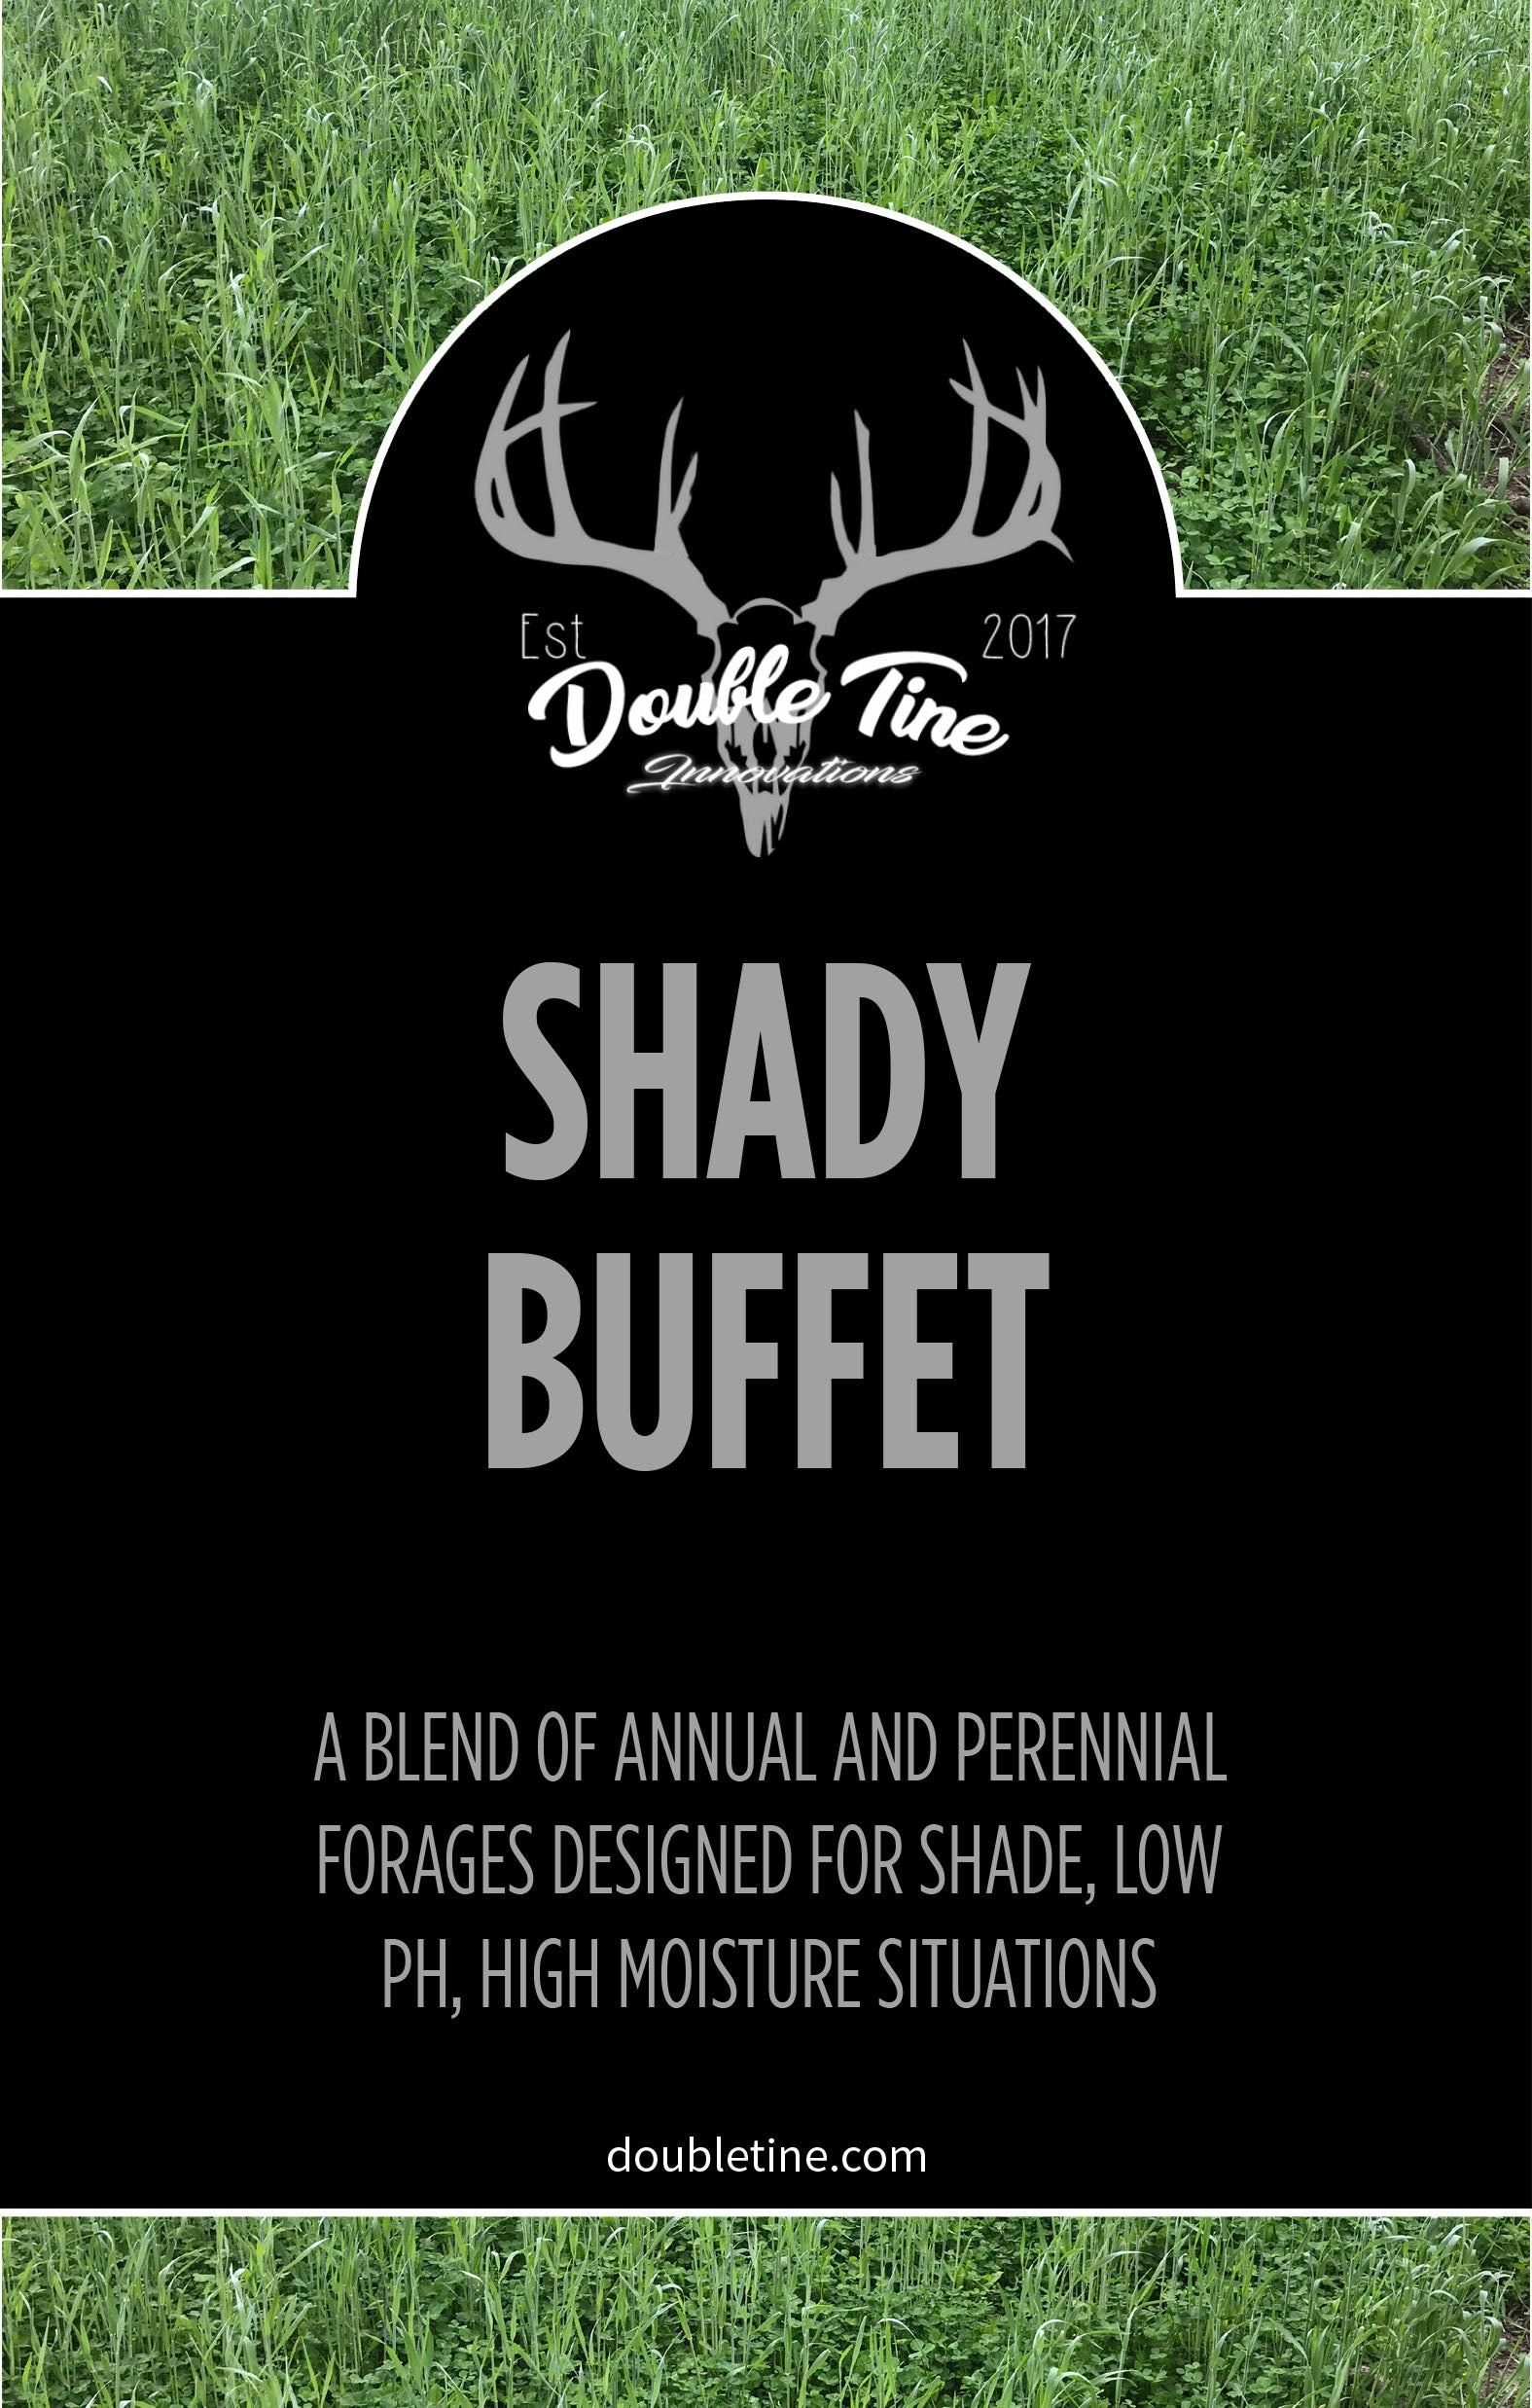 Shady Buffet